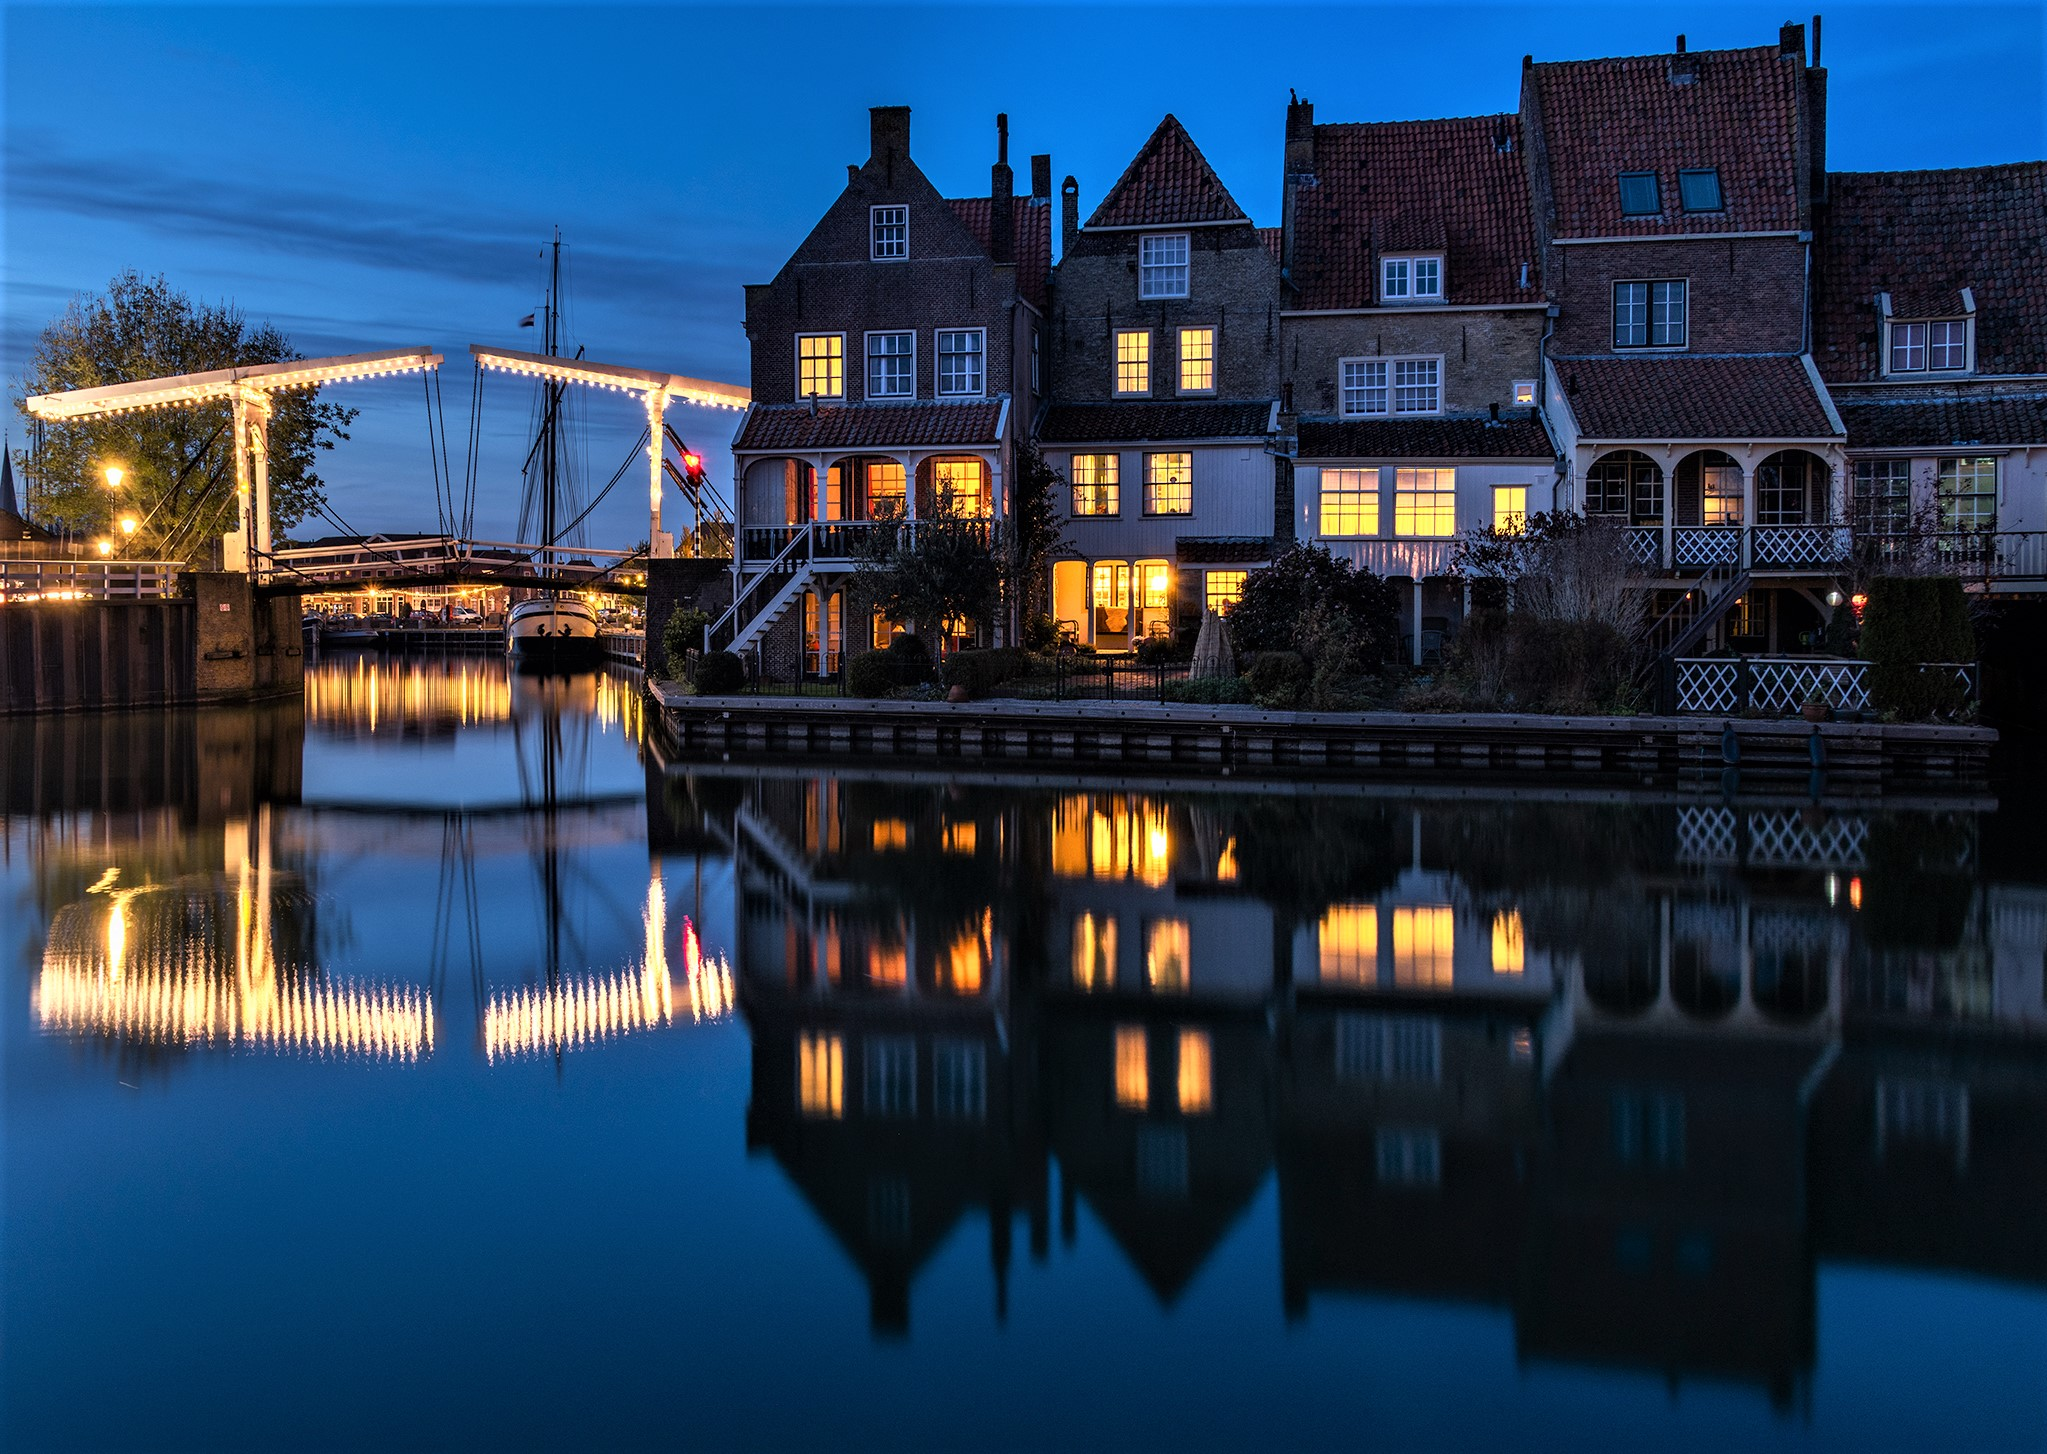 Blue hour on Enkhuize, Netherlands